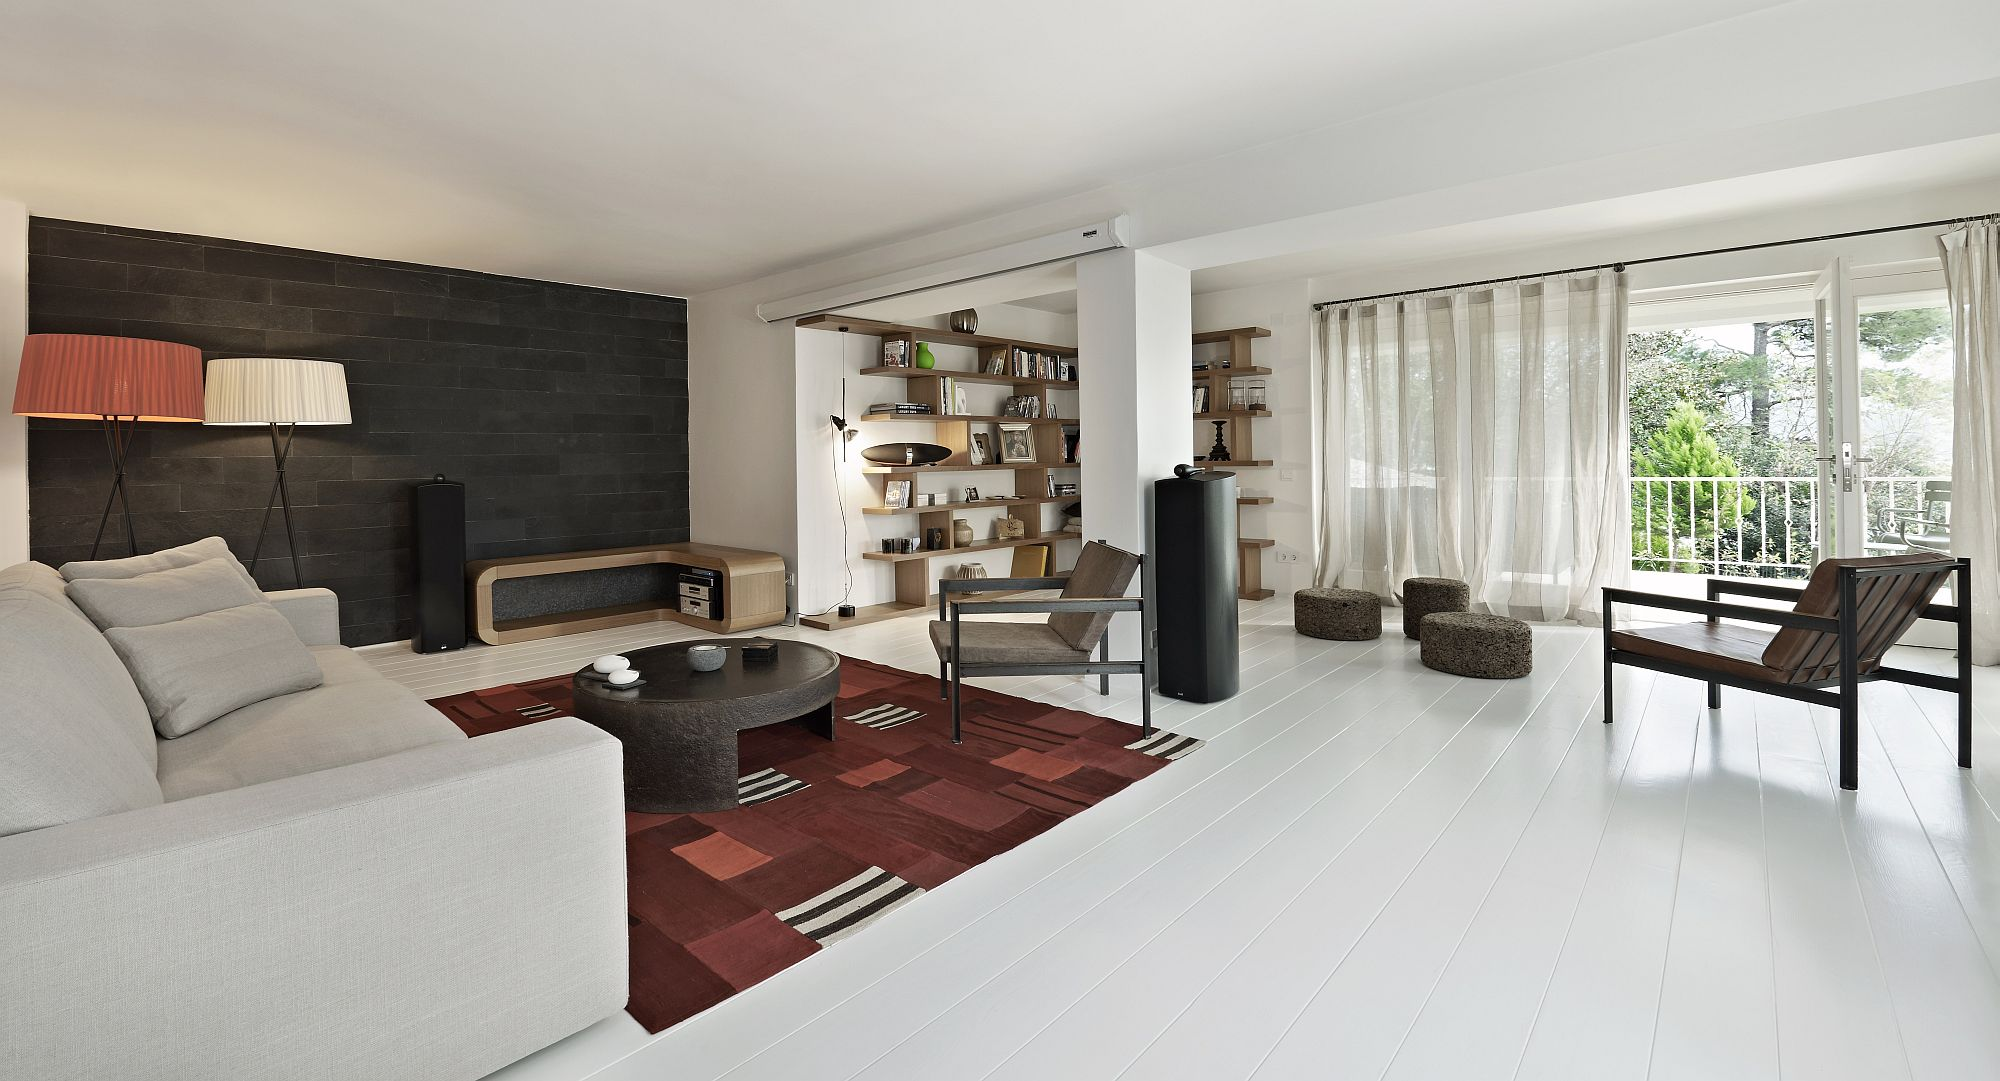 Exquisite c v house minimal and reclusive urban haven in istanbul